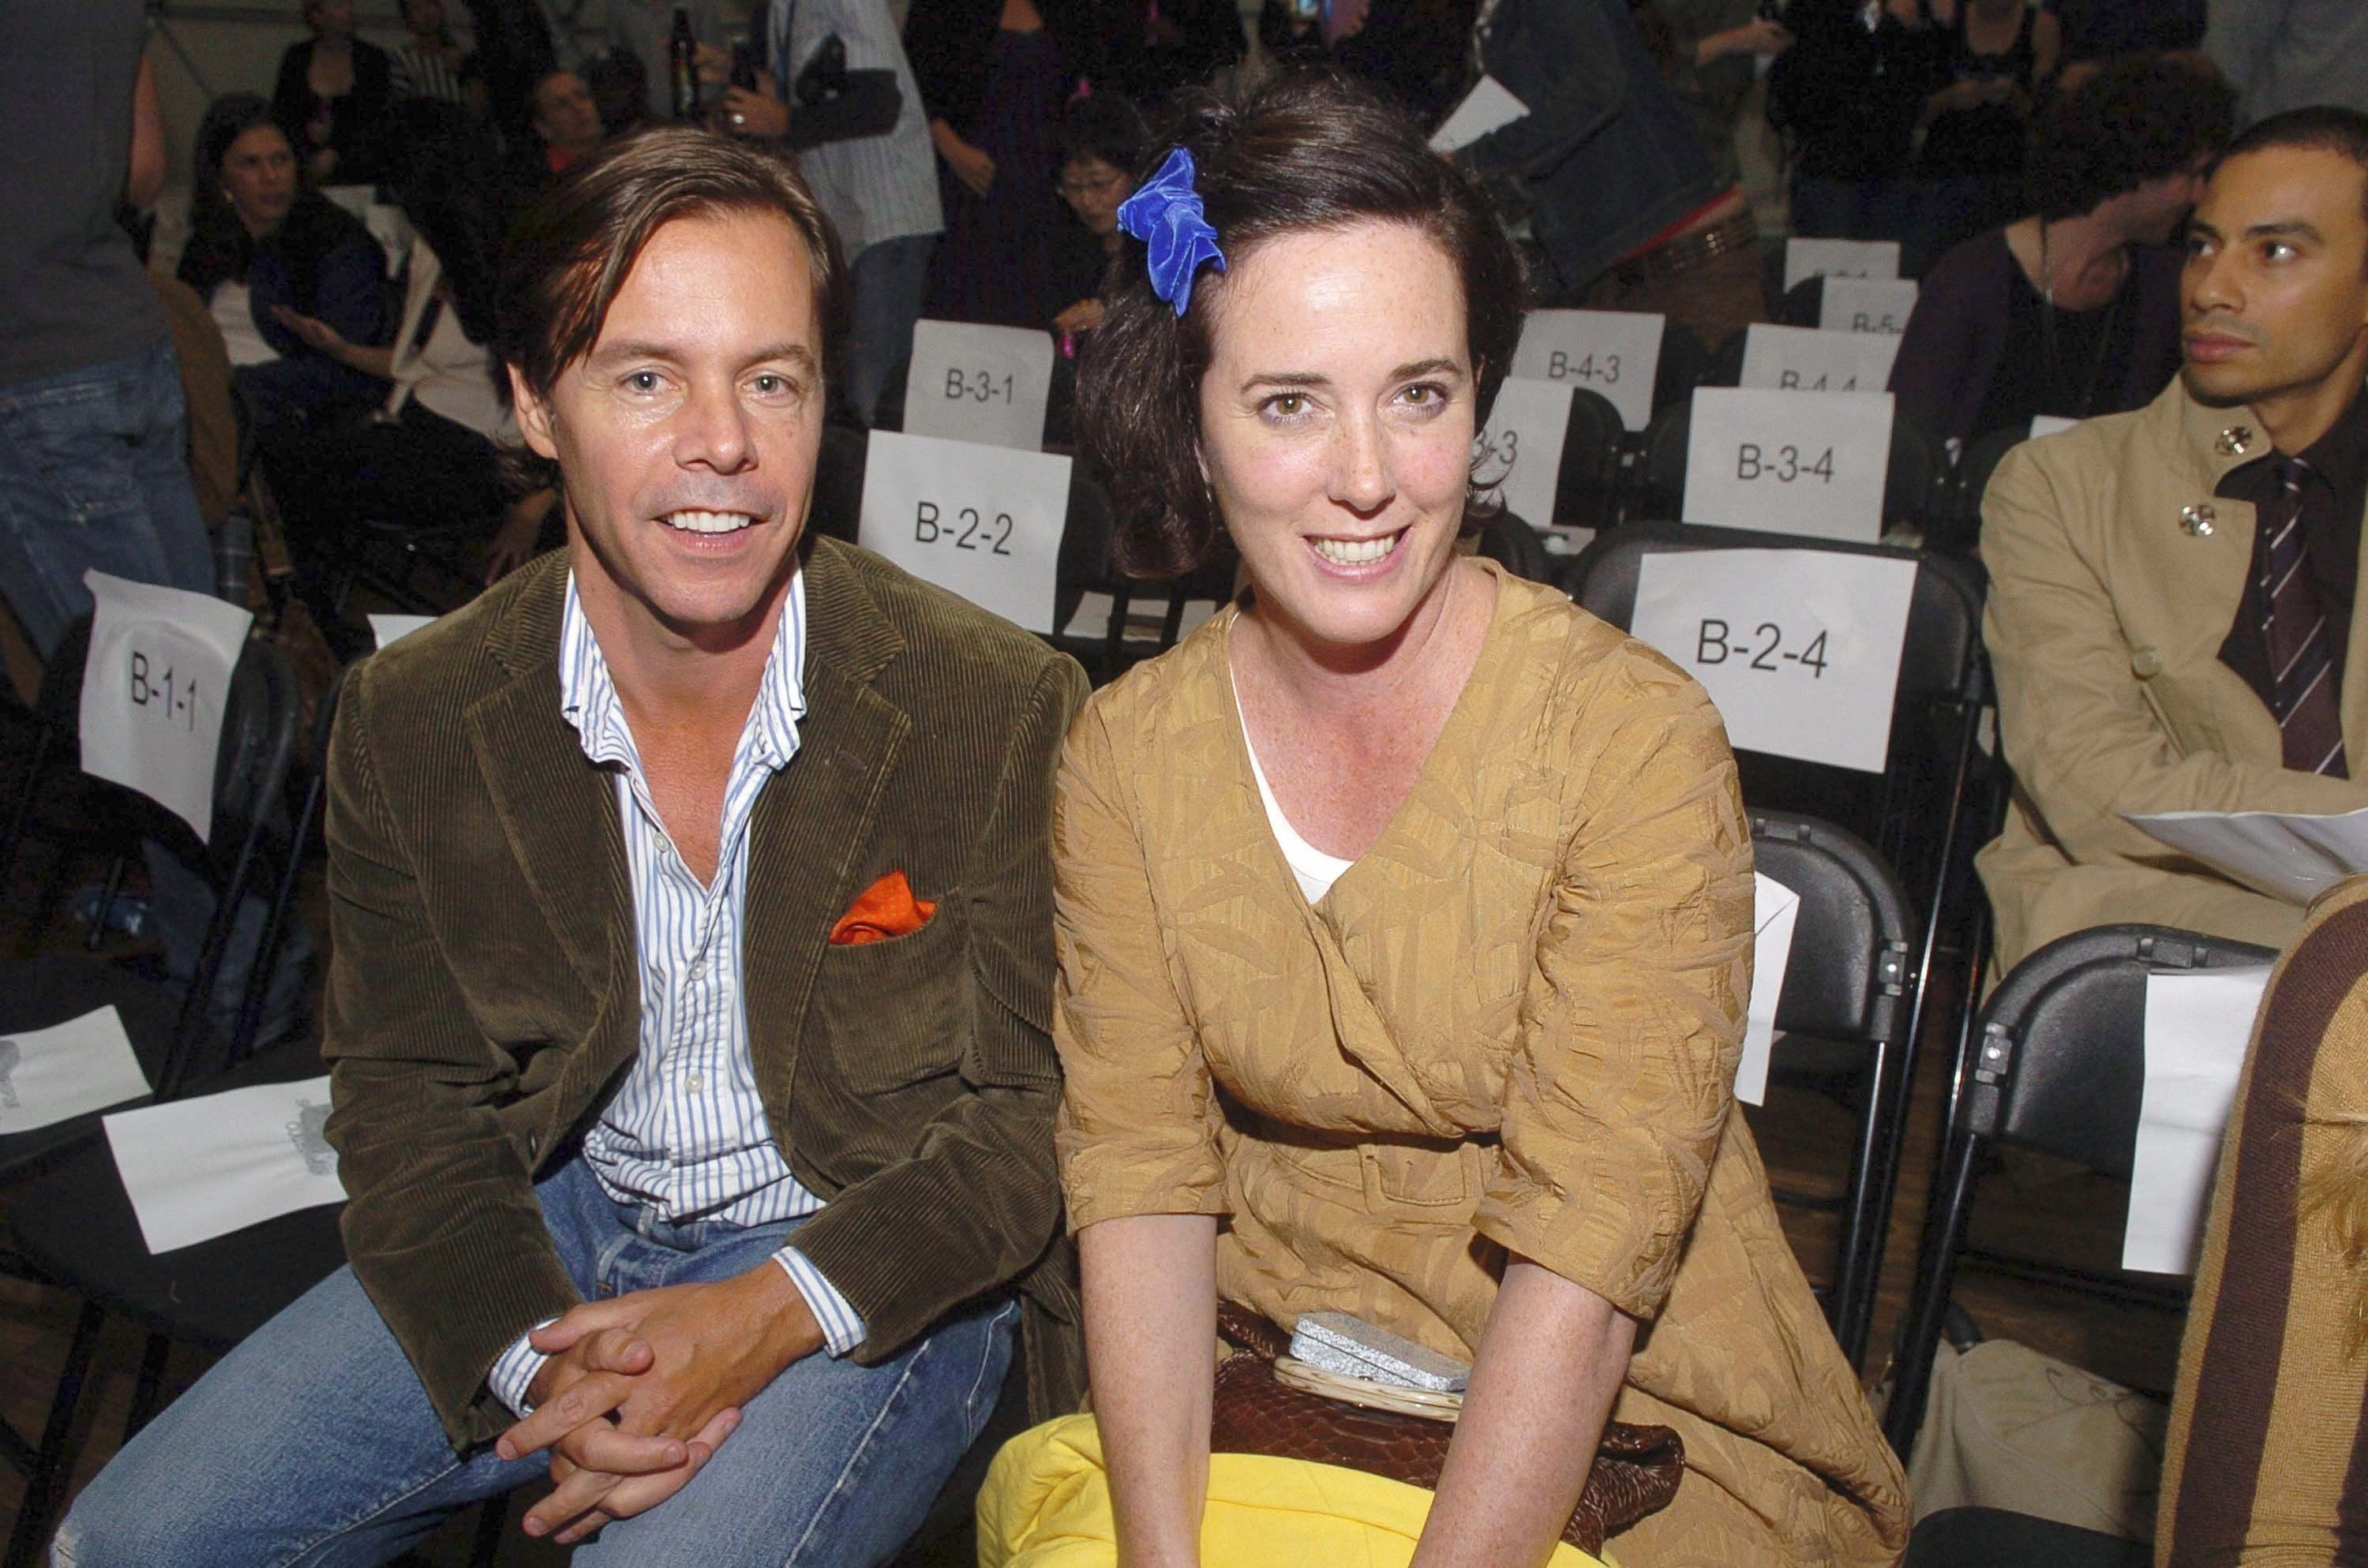 Kate Spade 'Obsessed' Over Robin Williams' Death